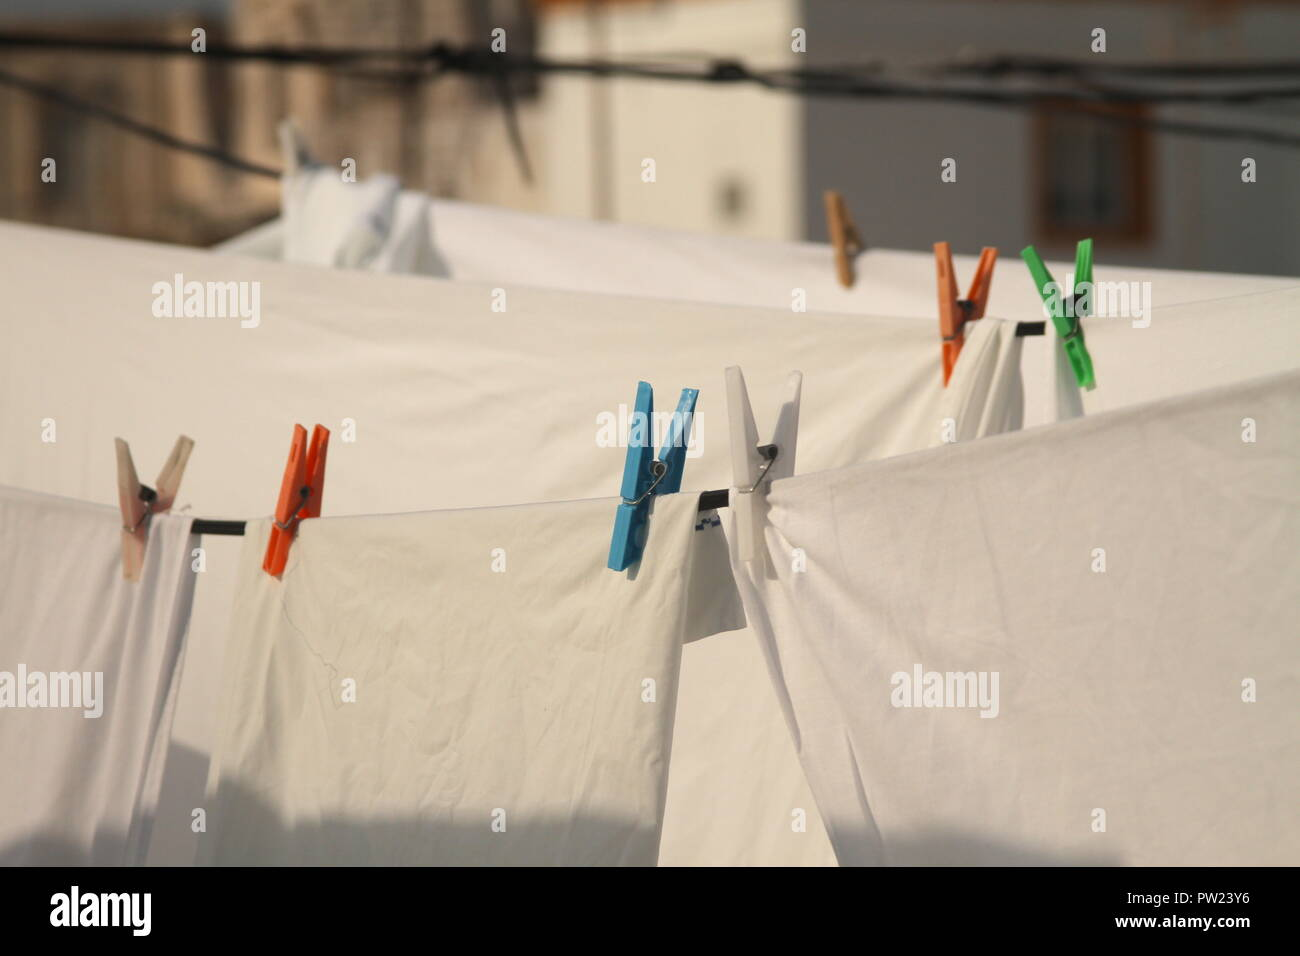 White sheets and clothes hanging clamped from drying lines, in a small Mediterranean town rooftop. - Stock Image